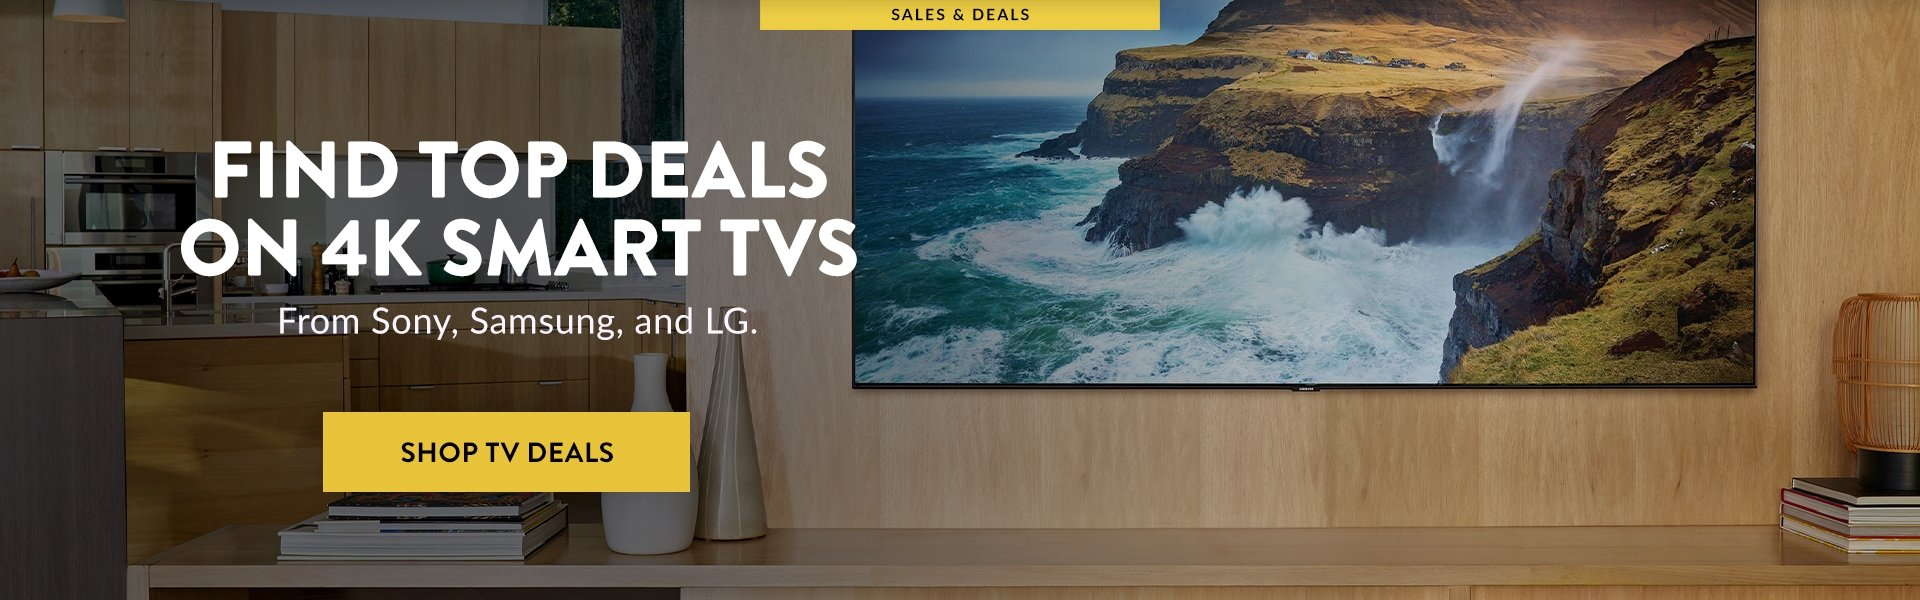 Shop TV deals